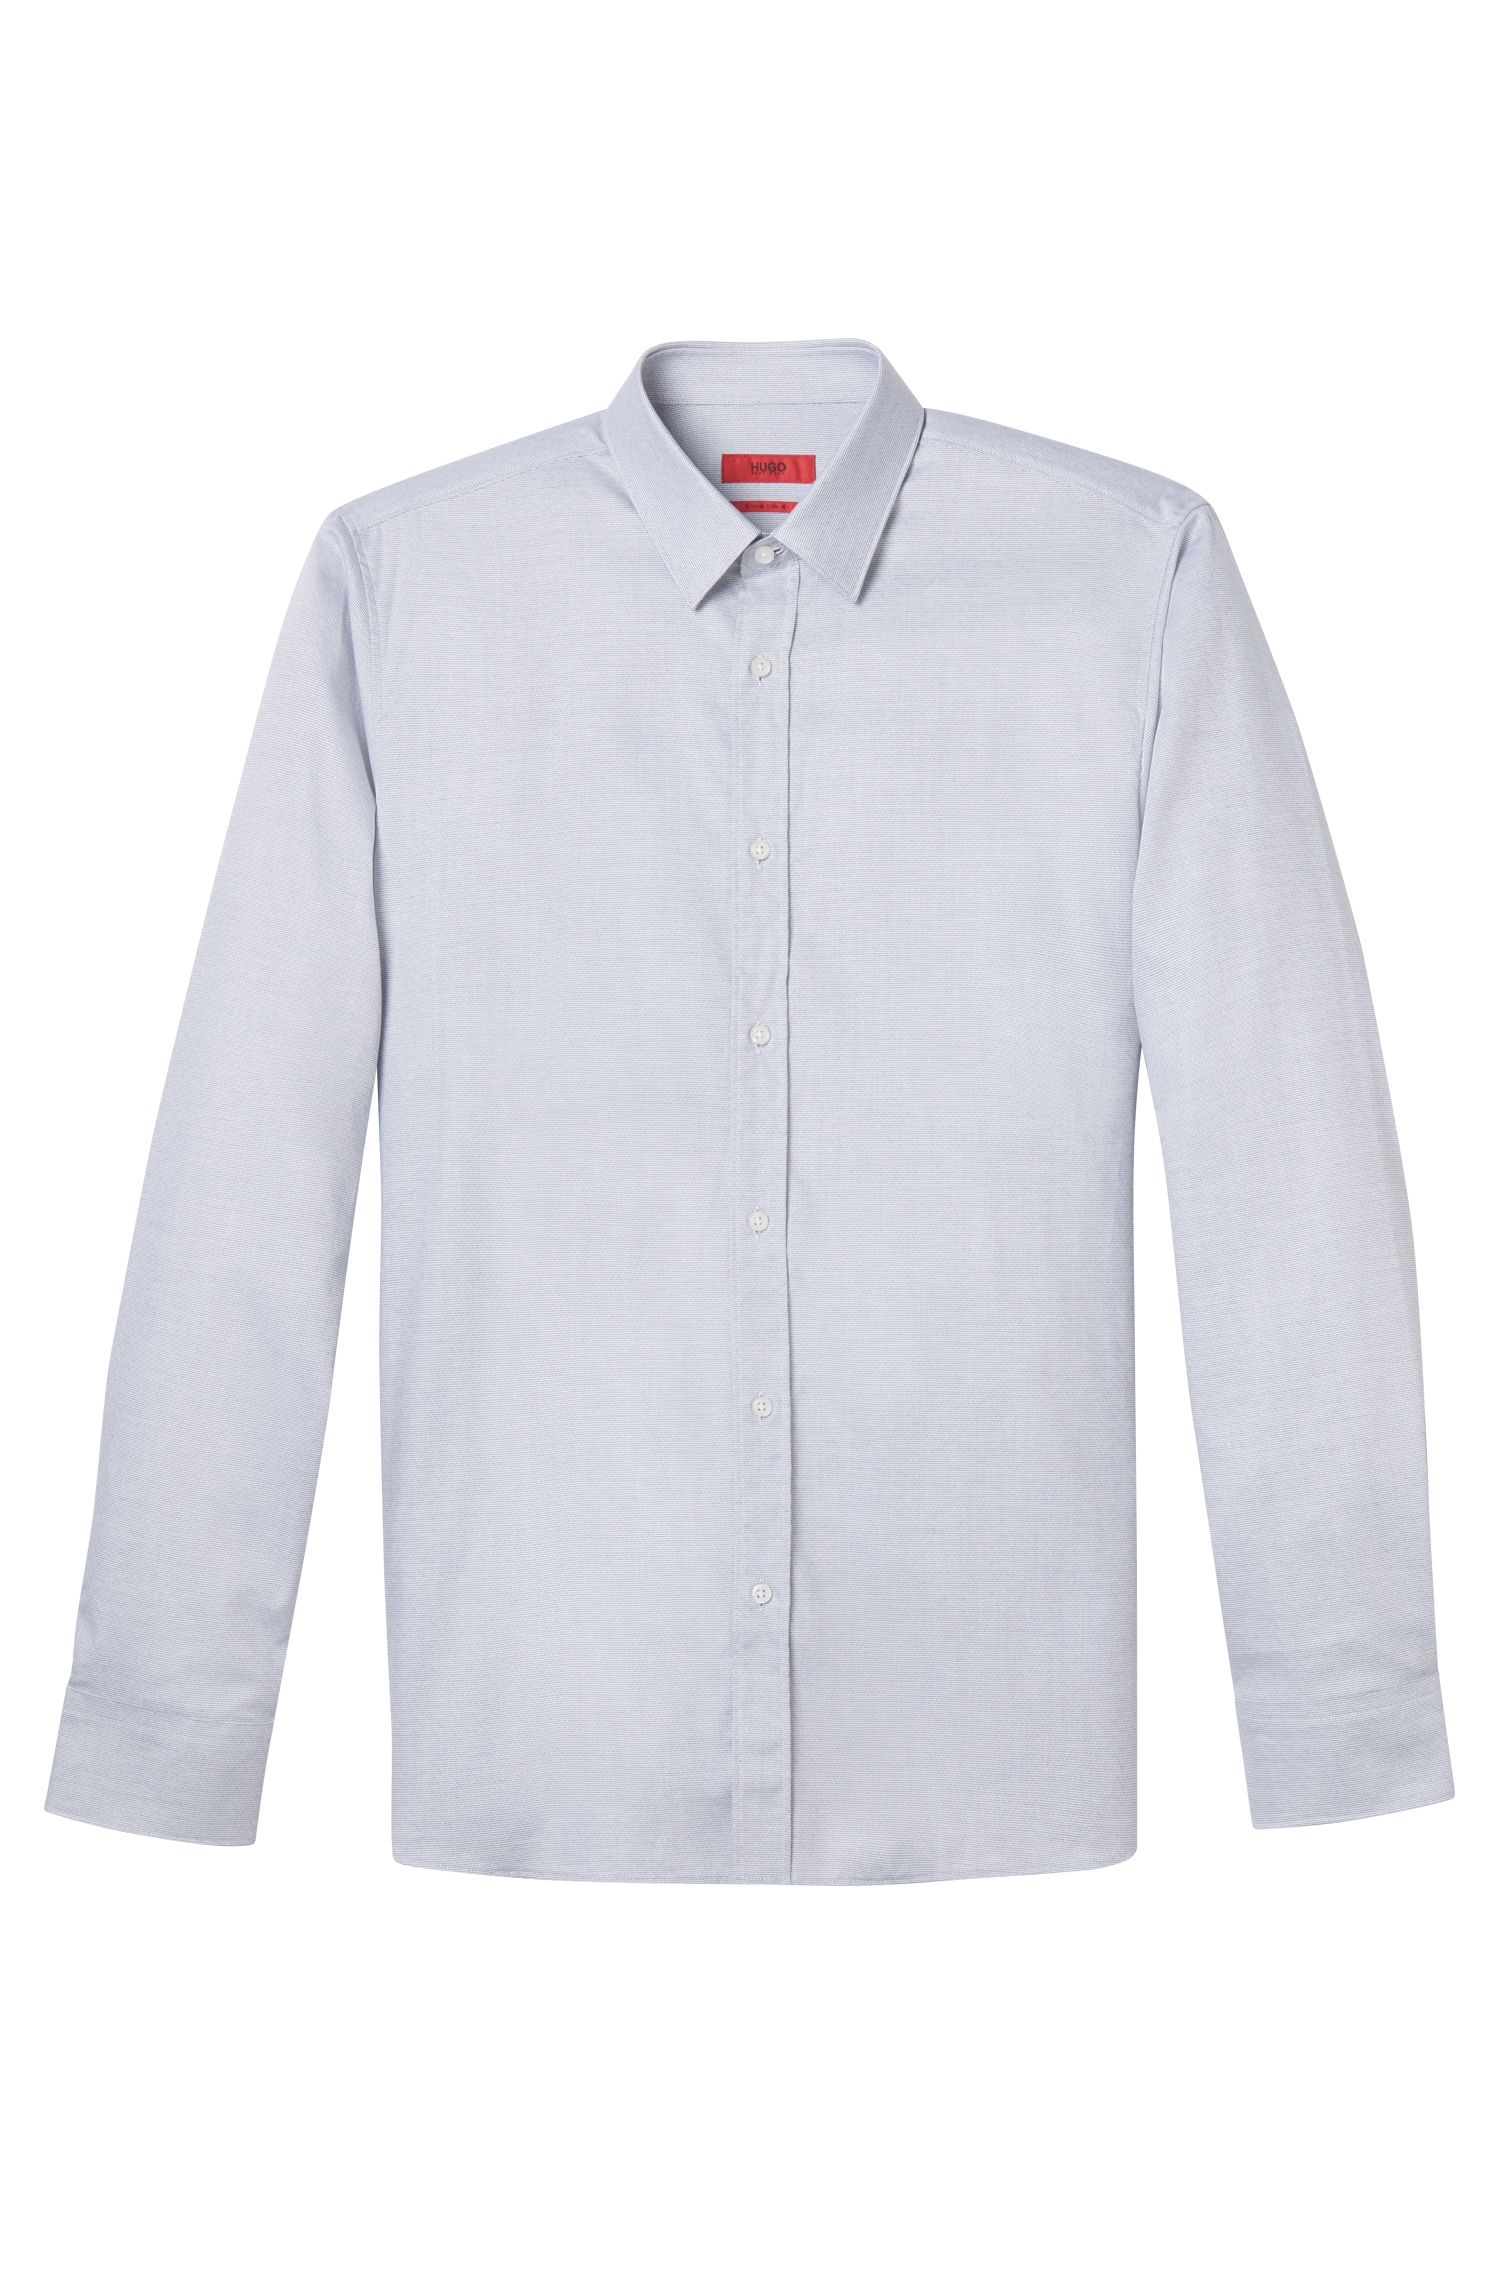 Herringbone Cotton Dress Shirt, Extra Slim Fit | Elisha